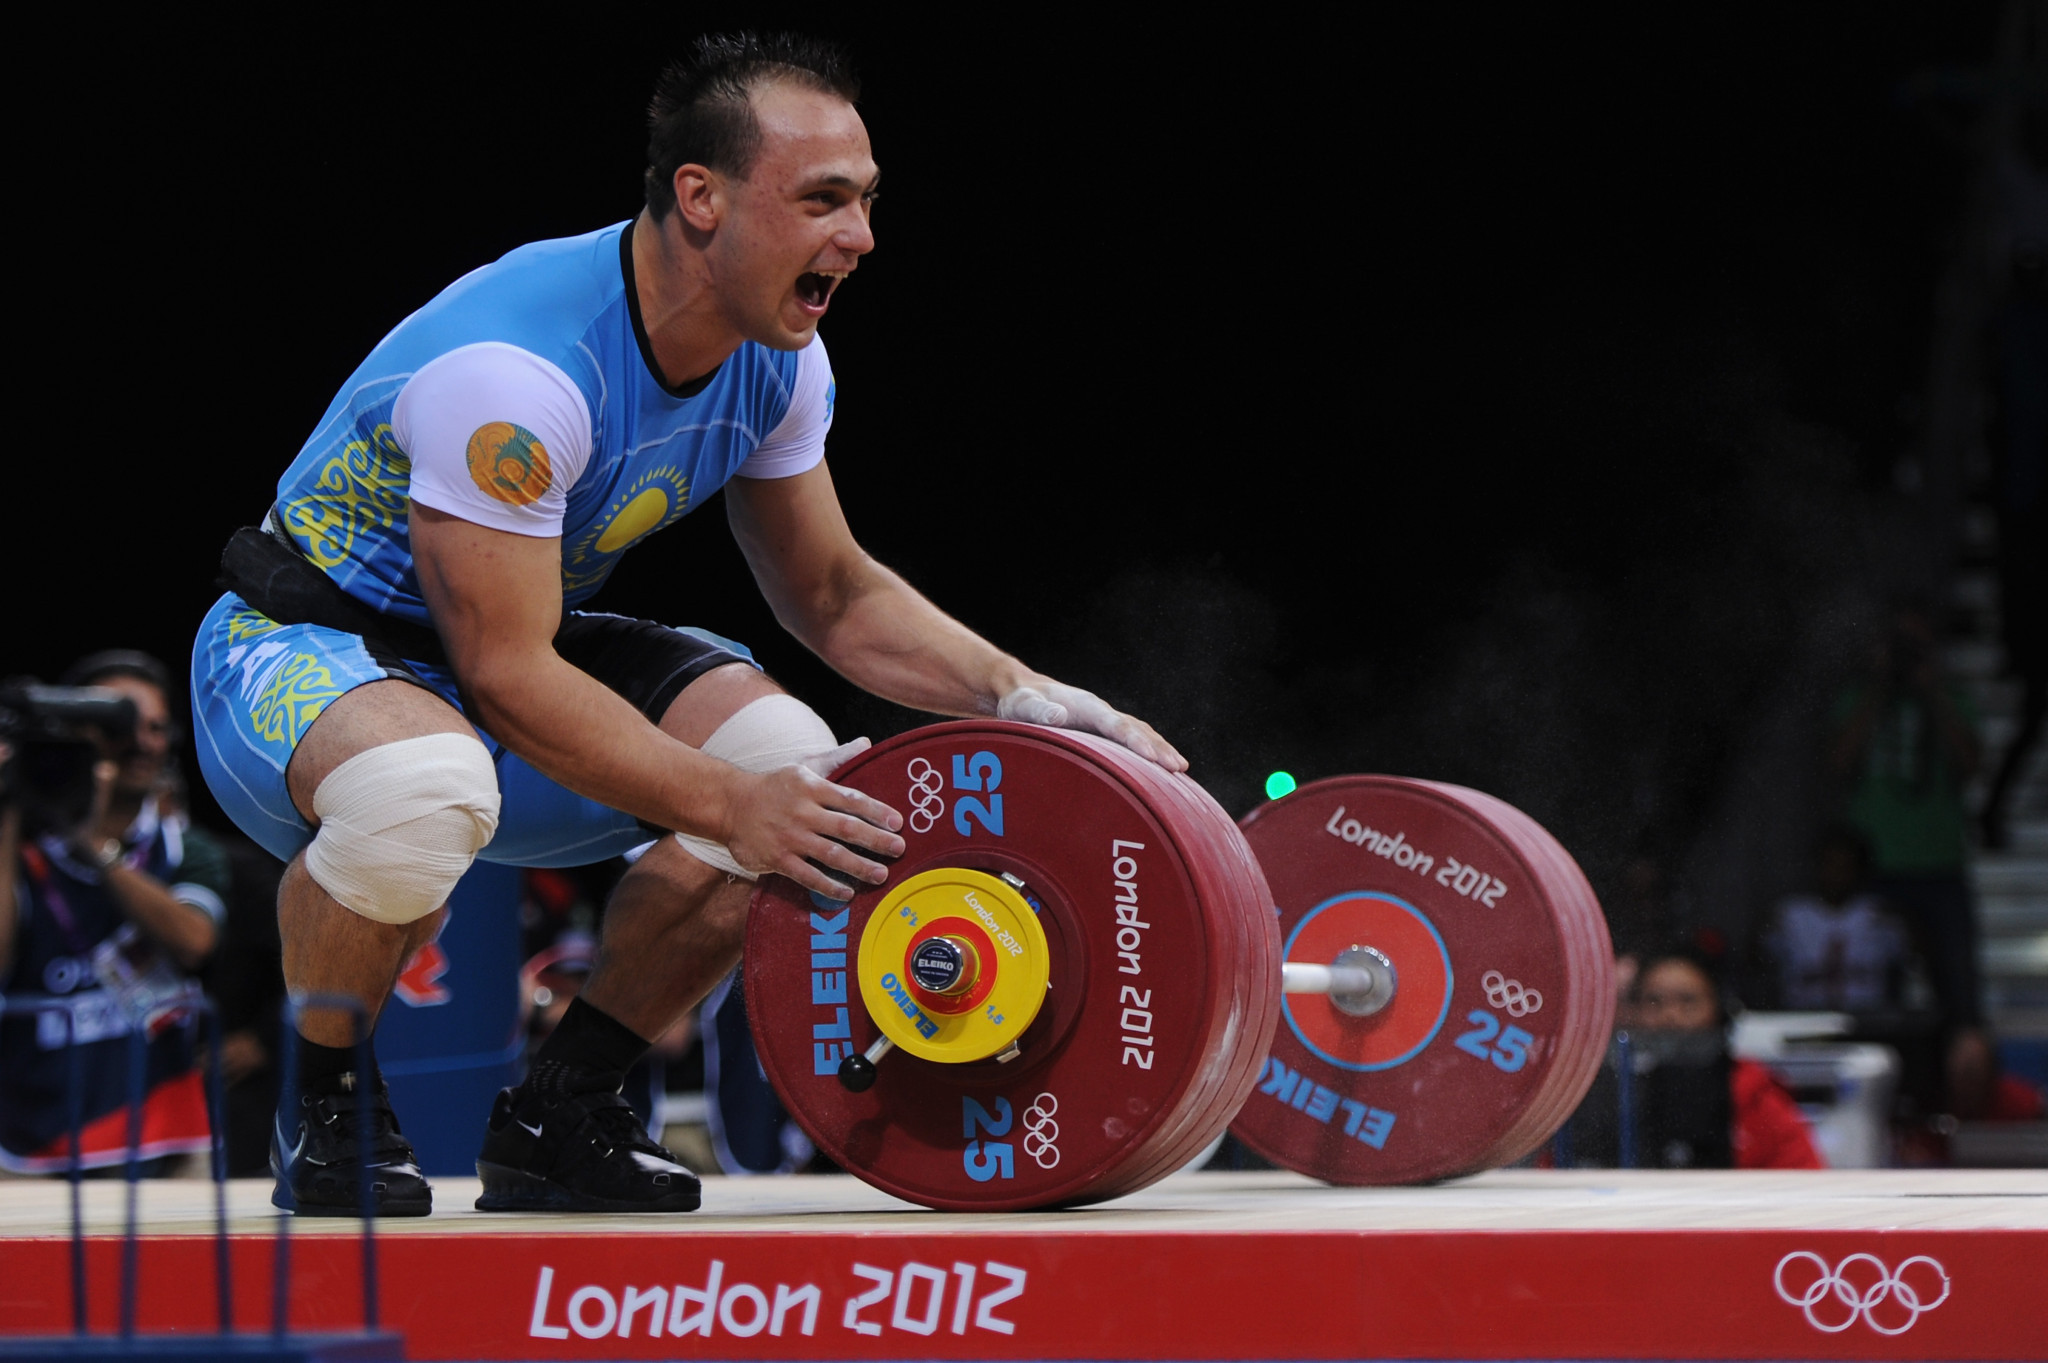 Weightlifting has introduced a new Olympic qualifying system as part of a bid to faze out cheats  ©Getty Images